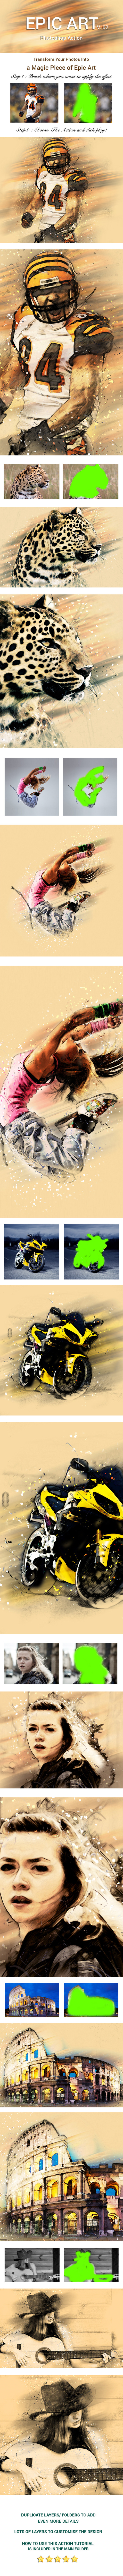 Epic Art 2 Photoshop Action - Photo Effects Actions